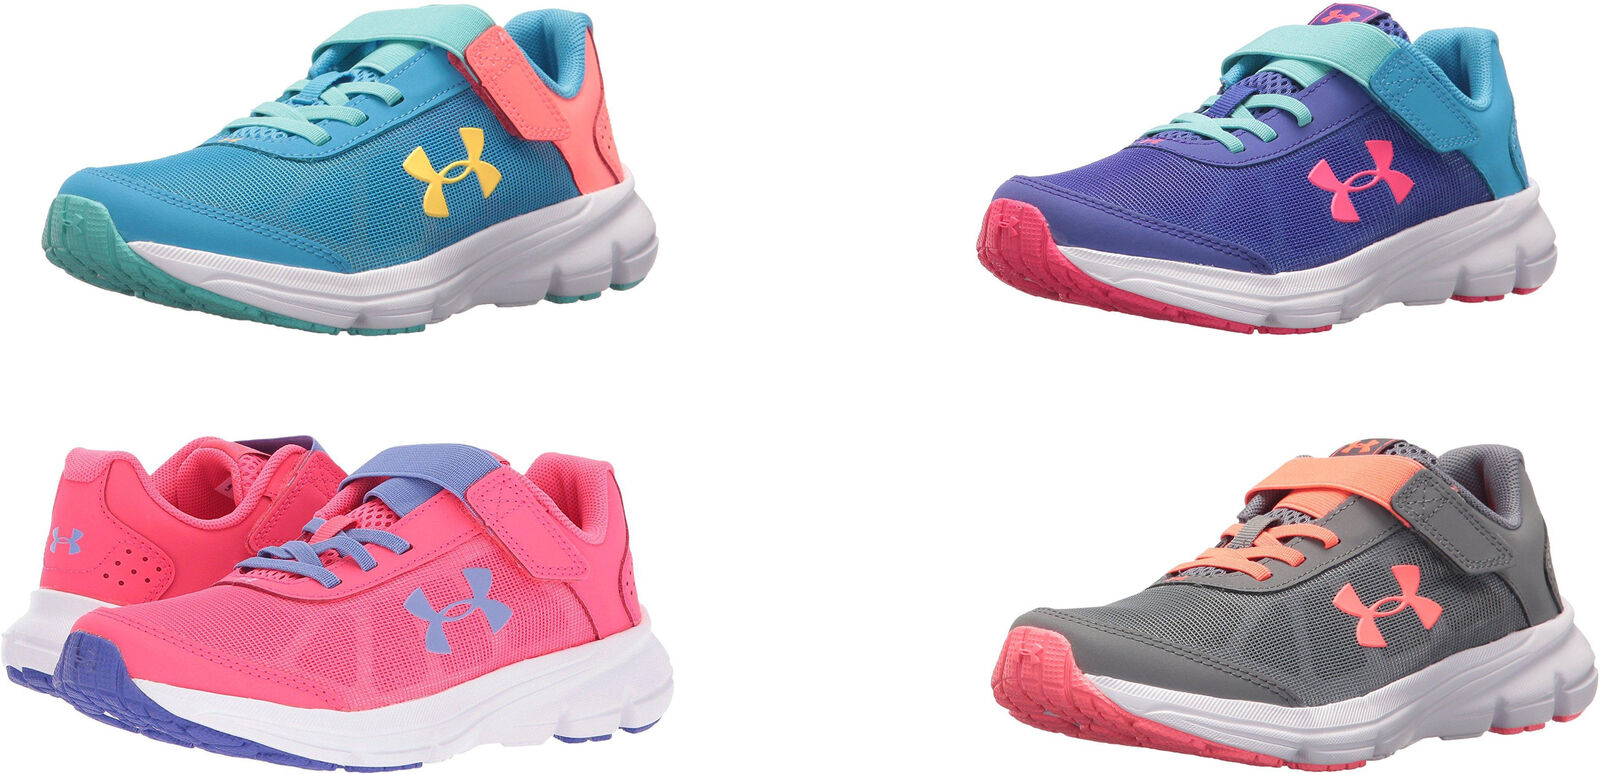 Under Armour Girls  Pre School Rave 2 Adjustable Closure Sneakers 6f0f0a62454